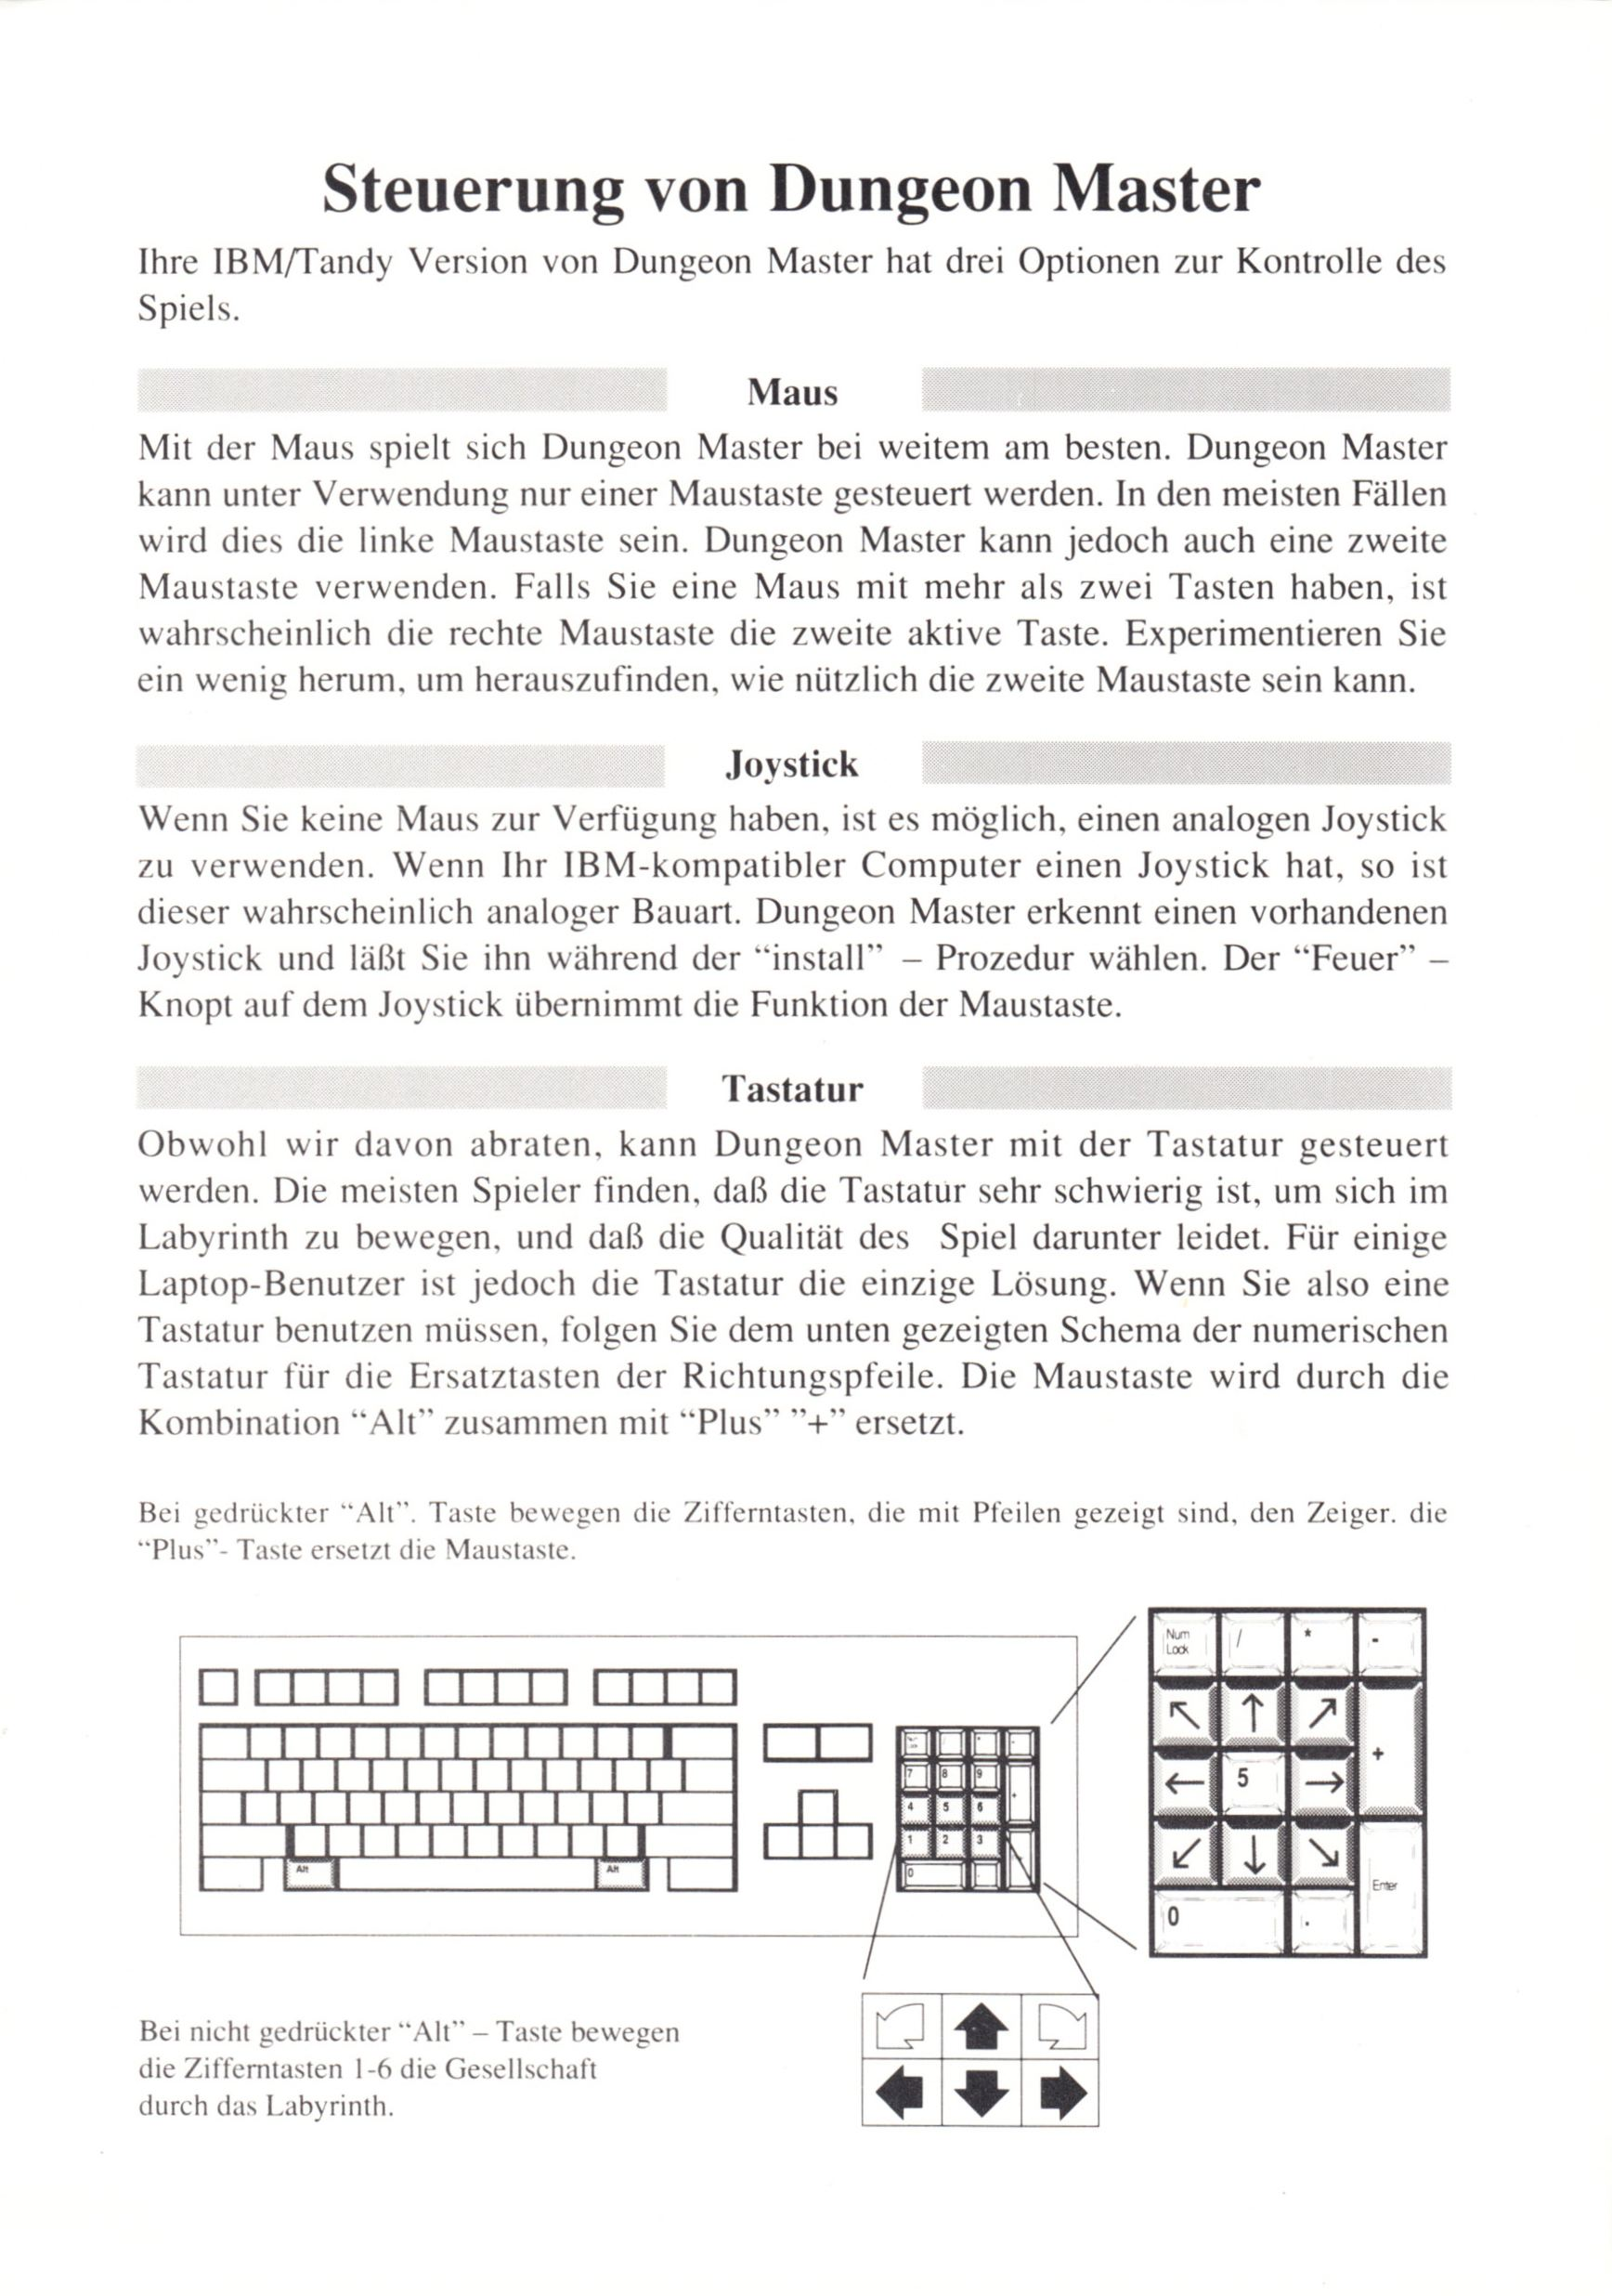 Game - Dungeon Master - DE - PC - Psygnosis - Quick Start Guide - Page 002 - Scan